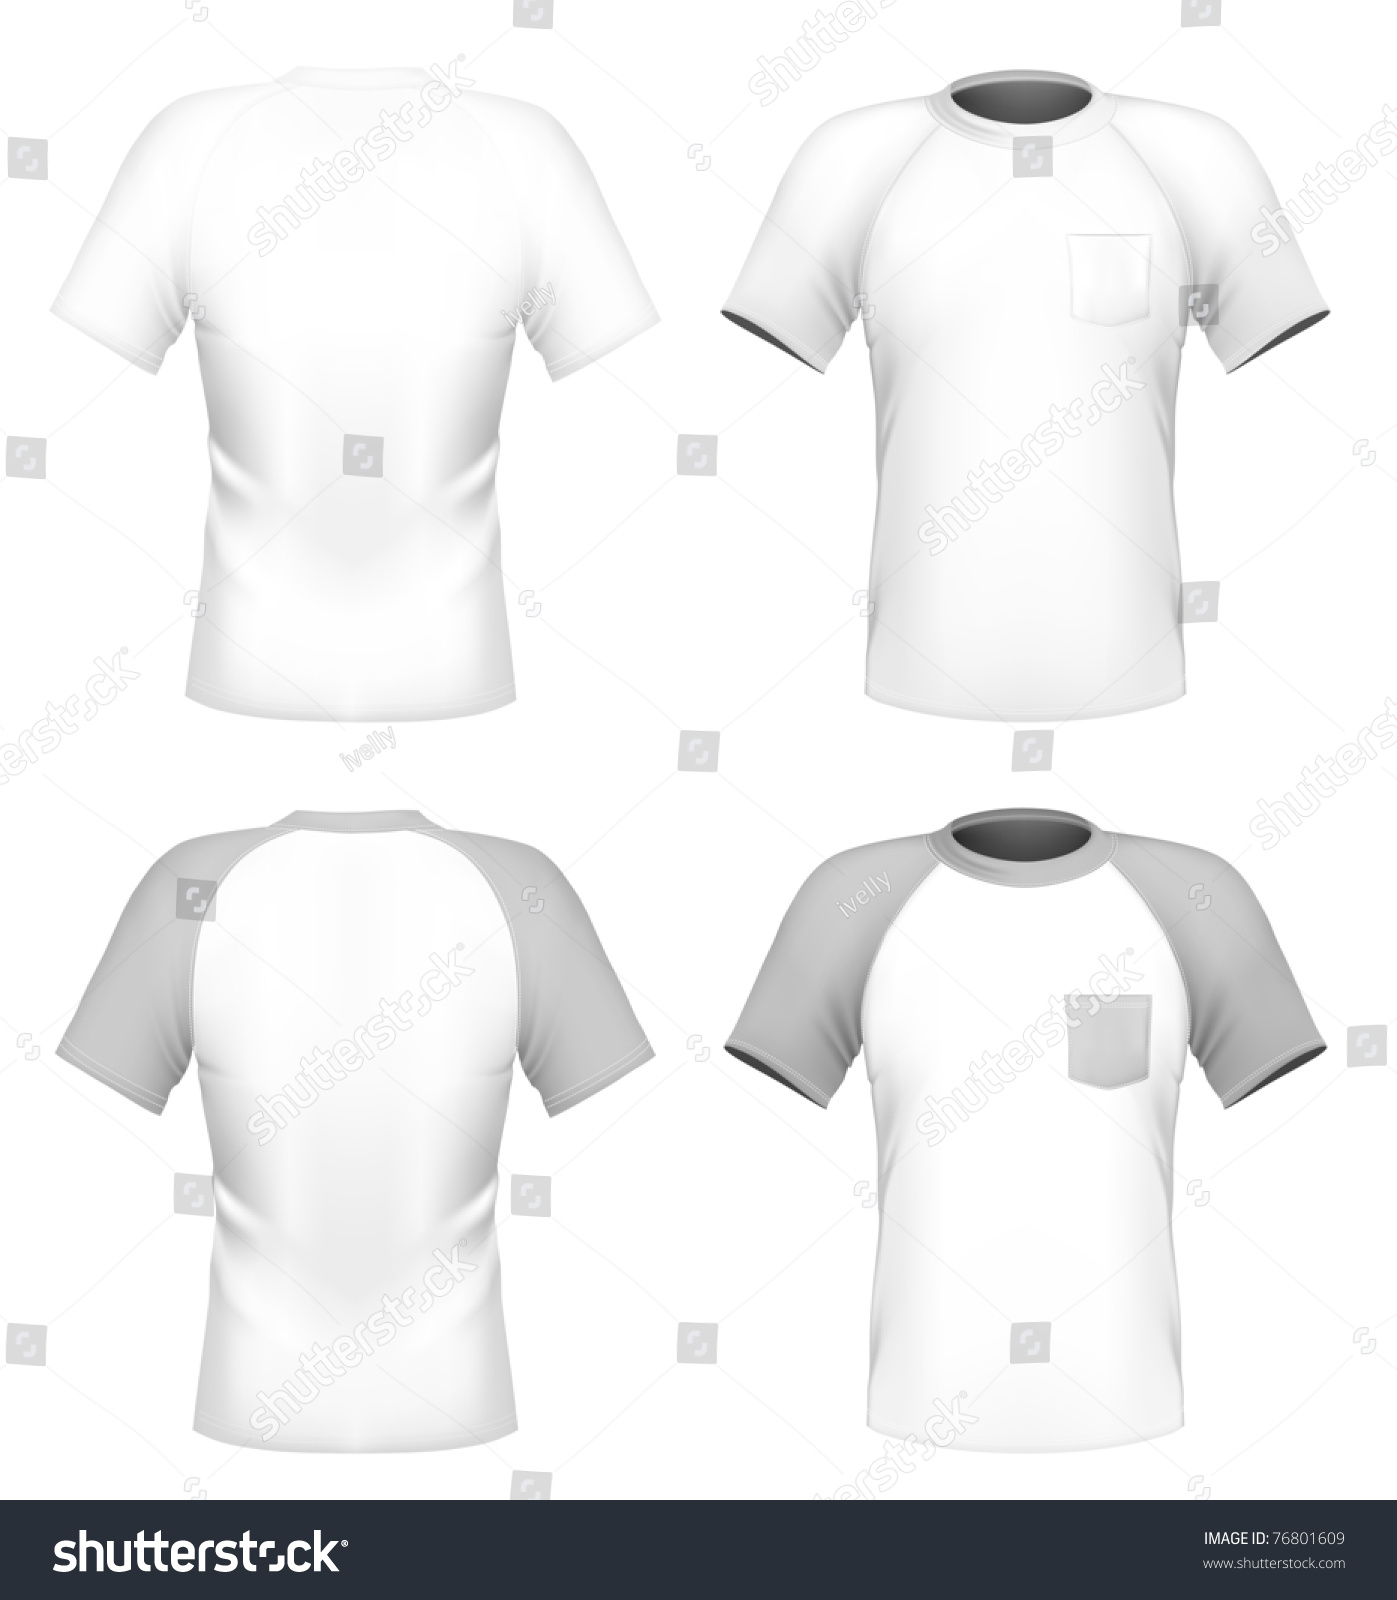 Vector men 39 s t shirt design template with pocket front for Front pocket t shirt design